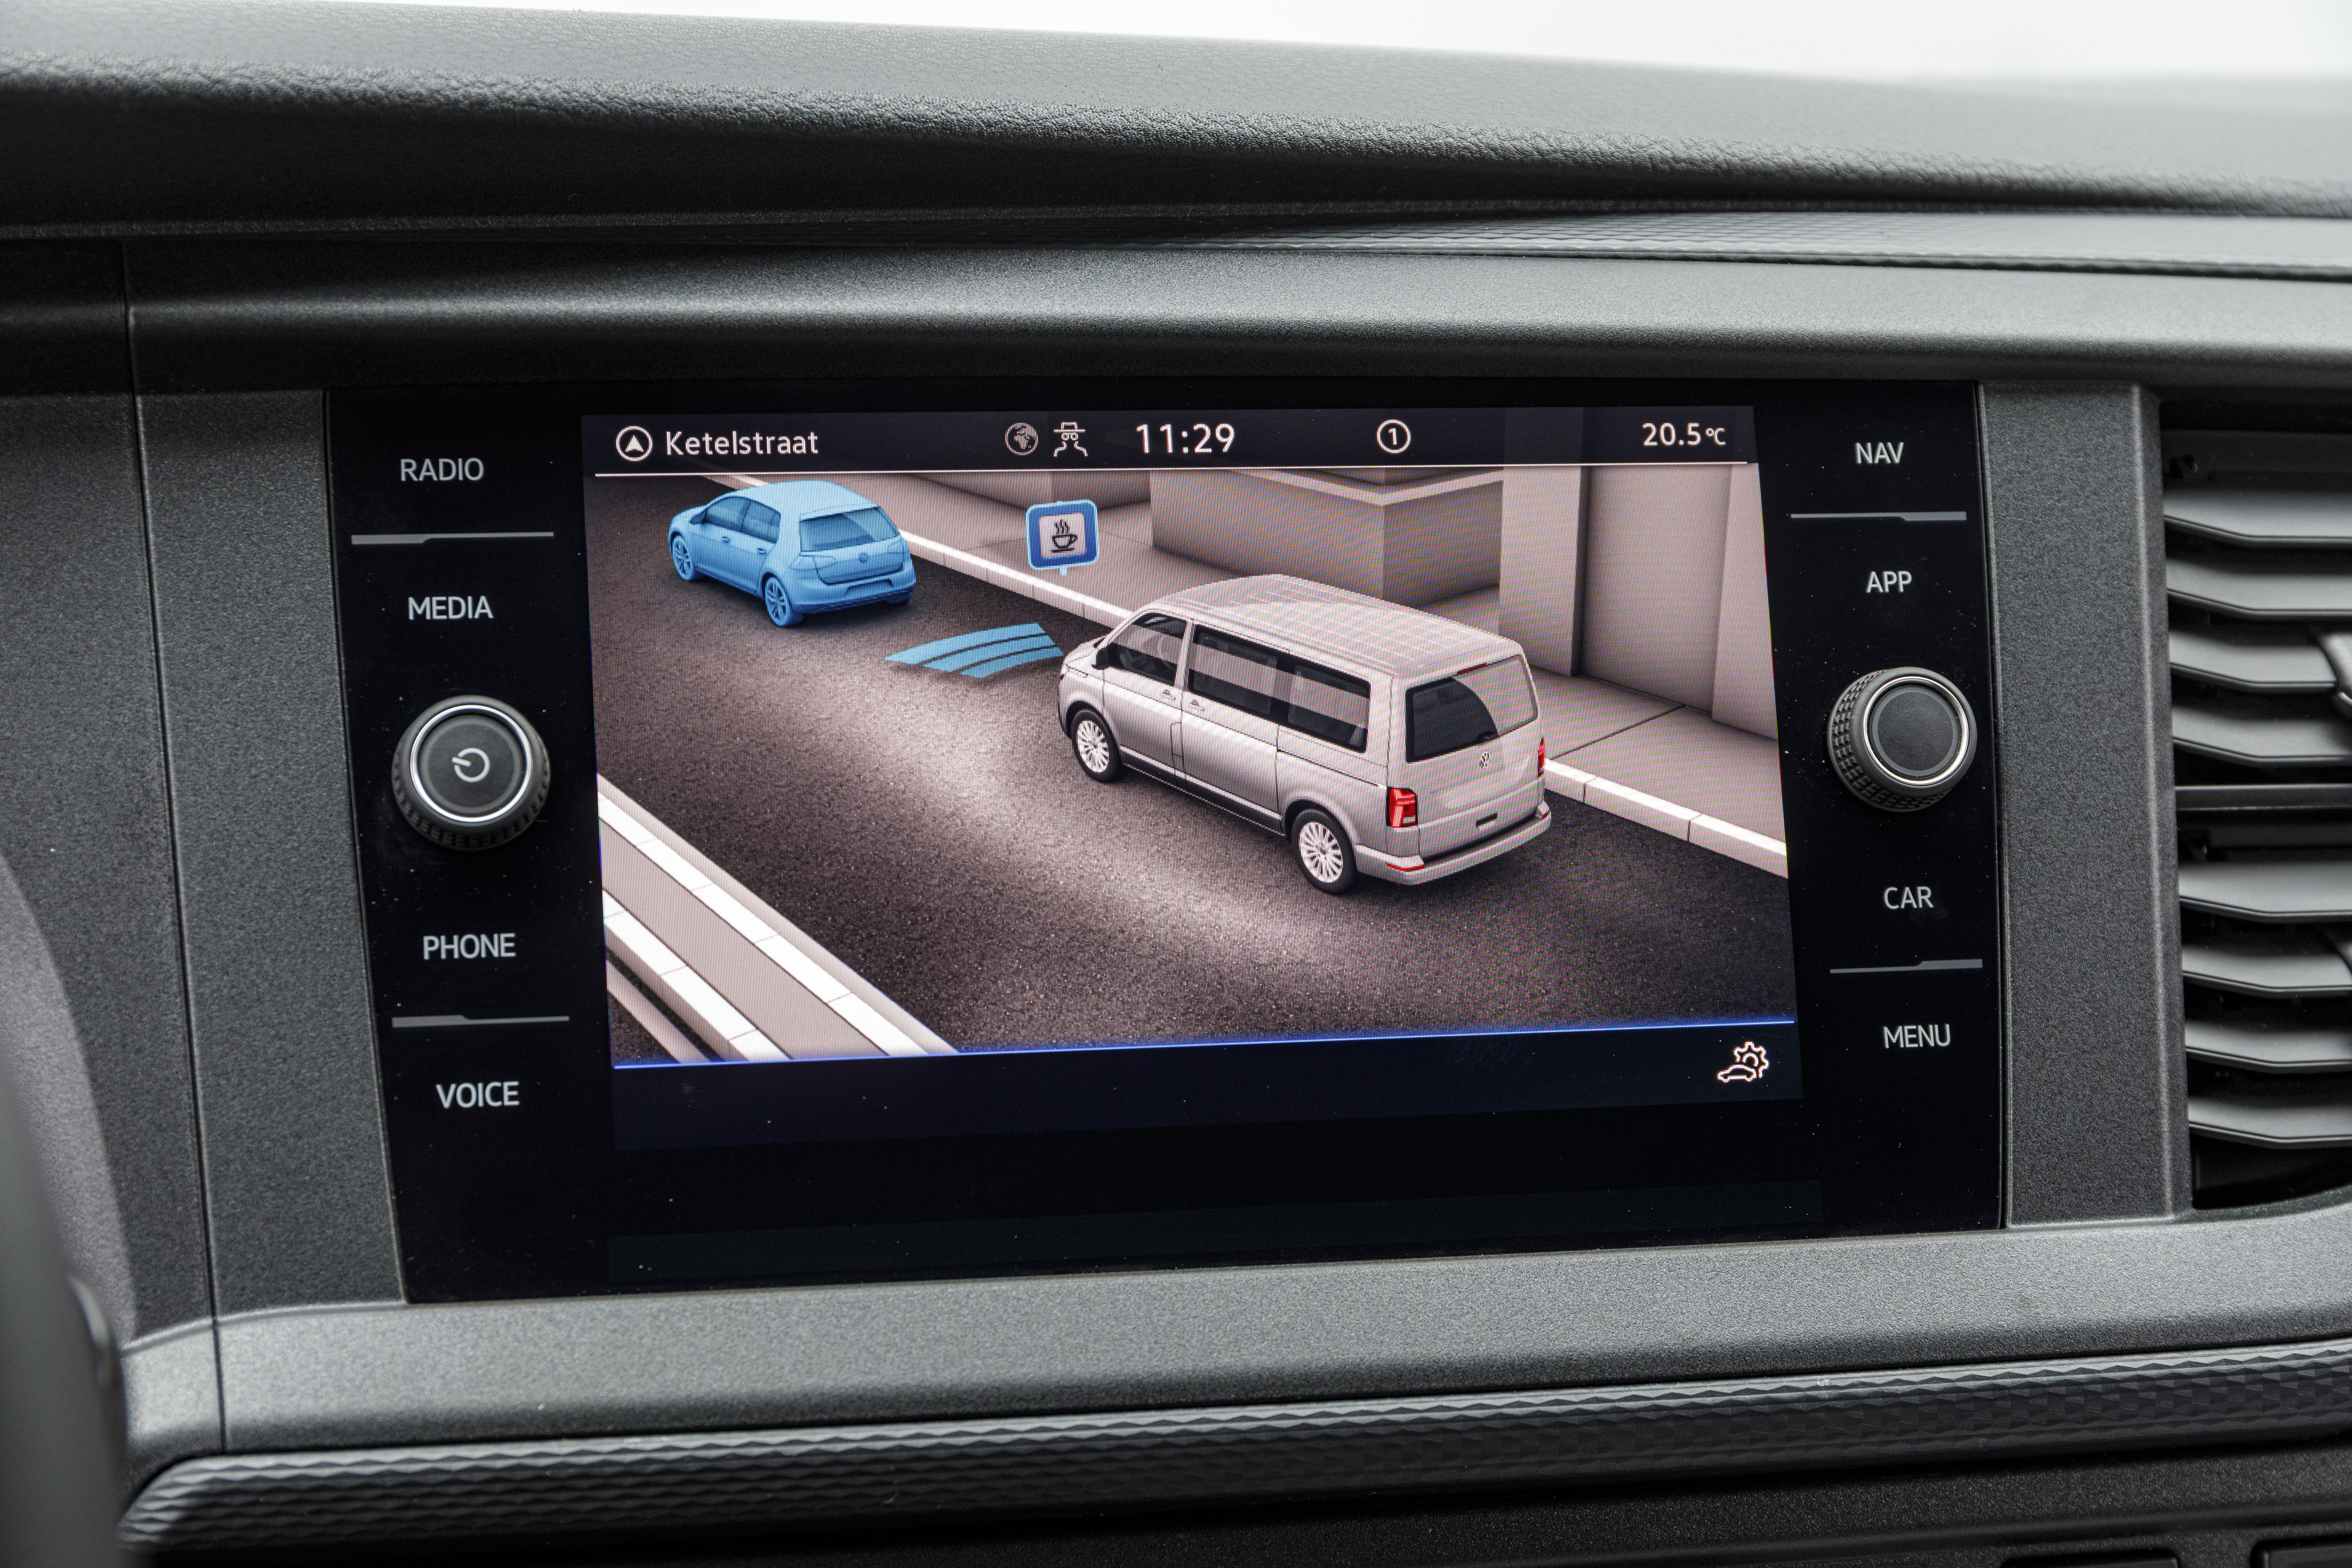 An updated infotainment system features on the T6.1